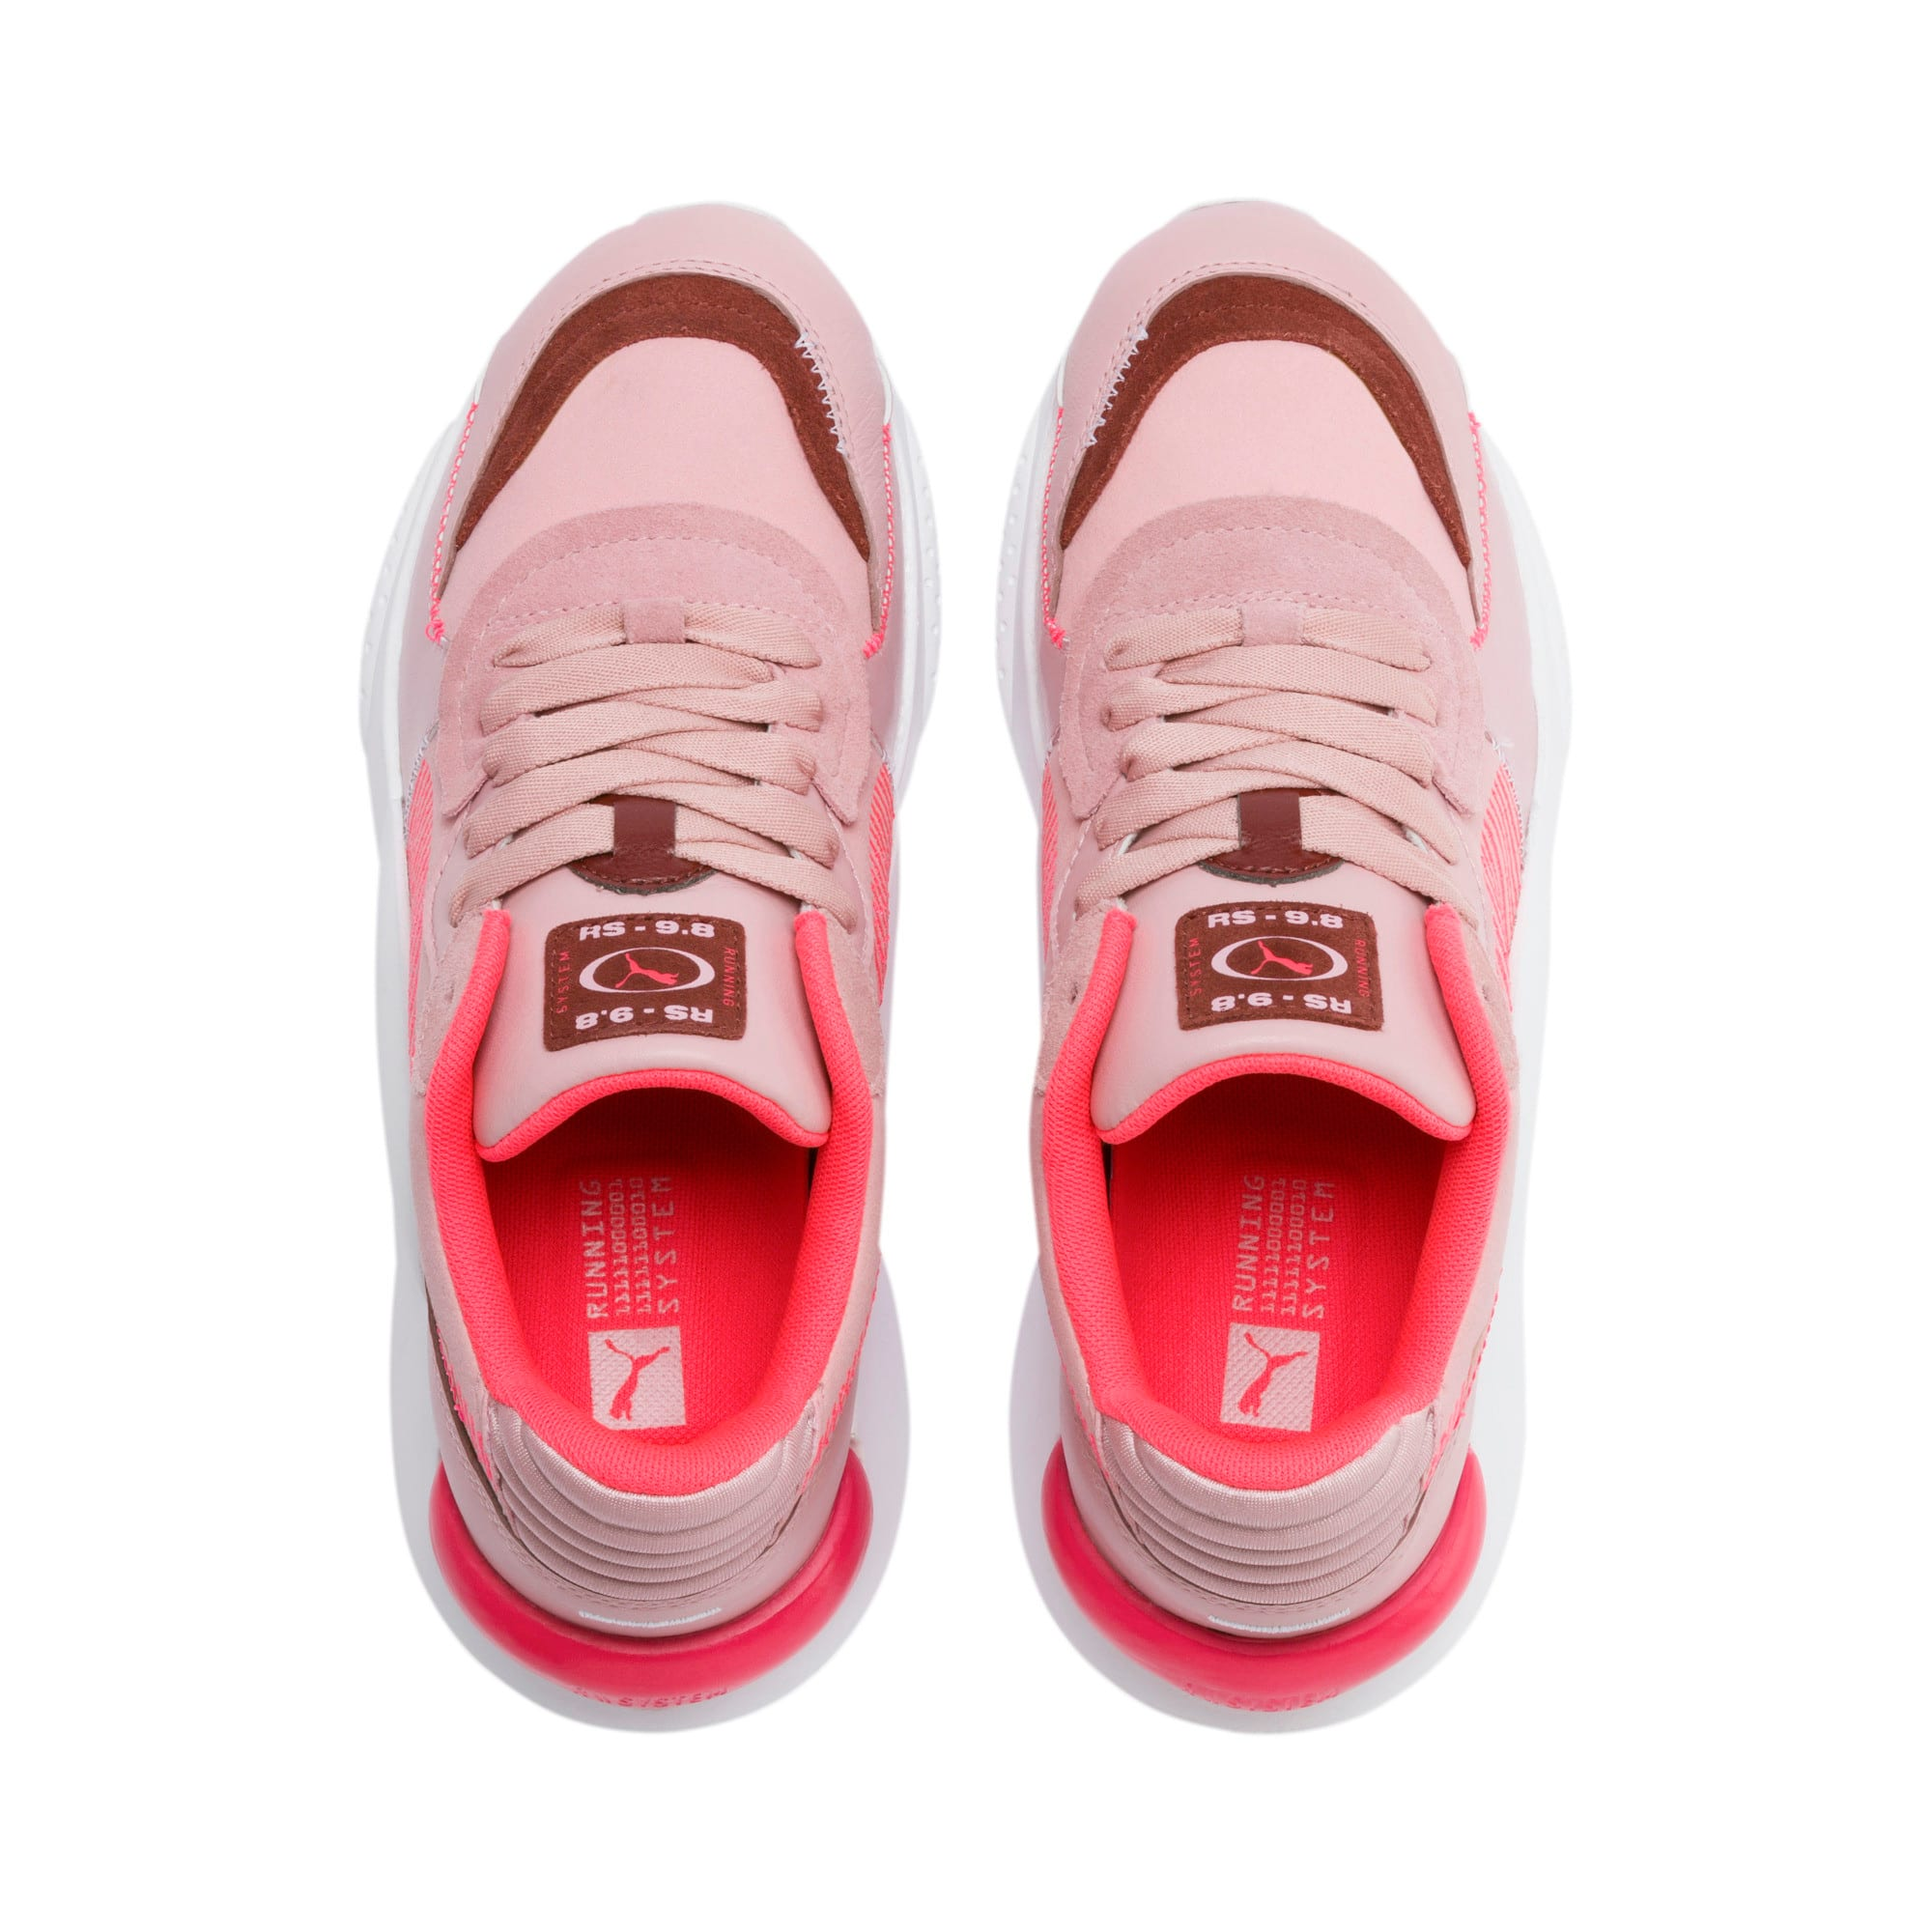 Thumbnail 7 of RS 9.8 Proto Women's Sneakers, Bridal Rose, medium